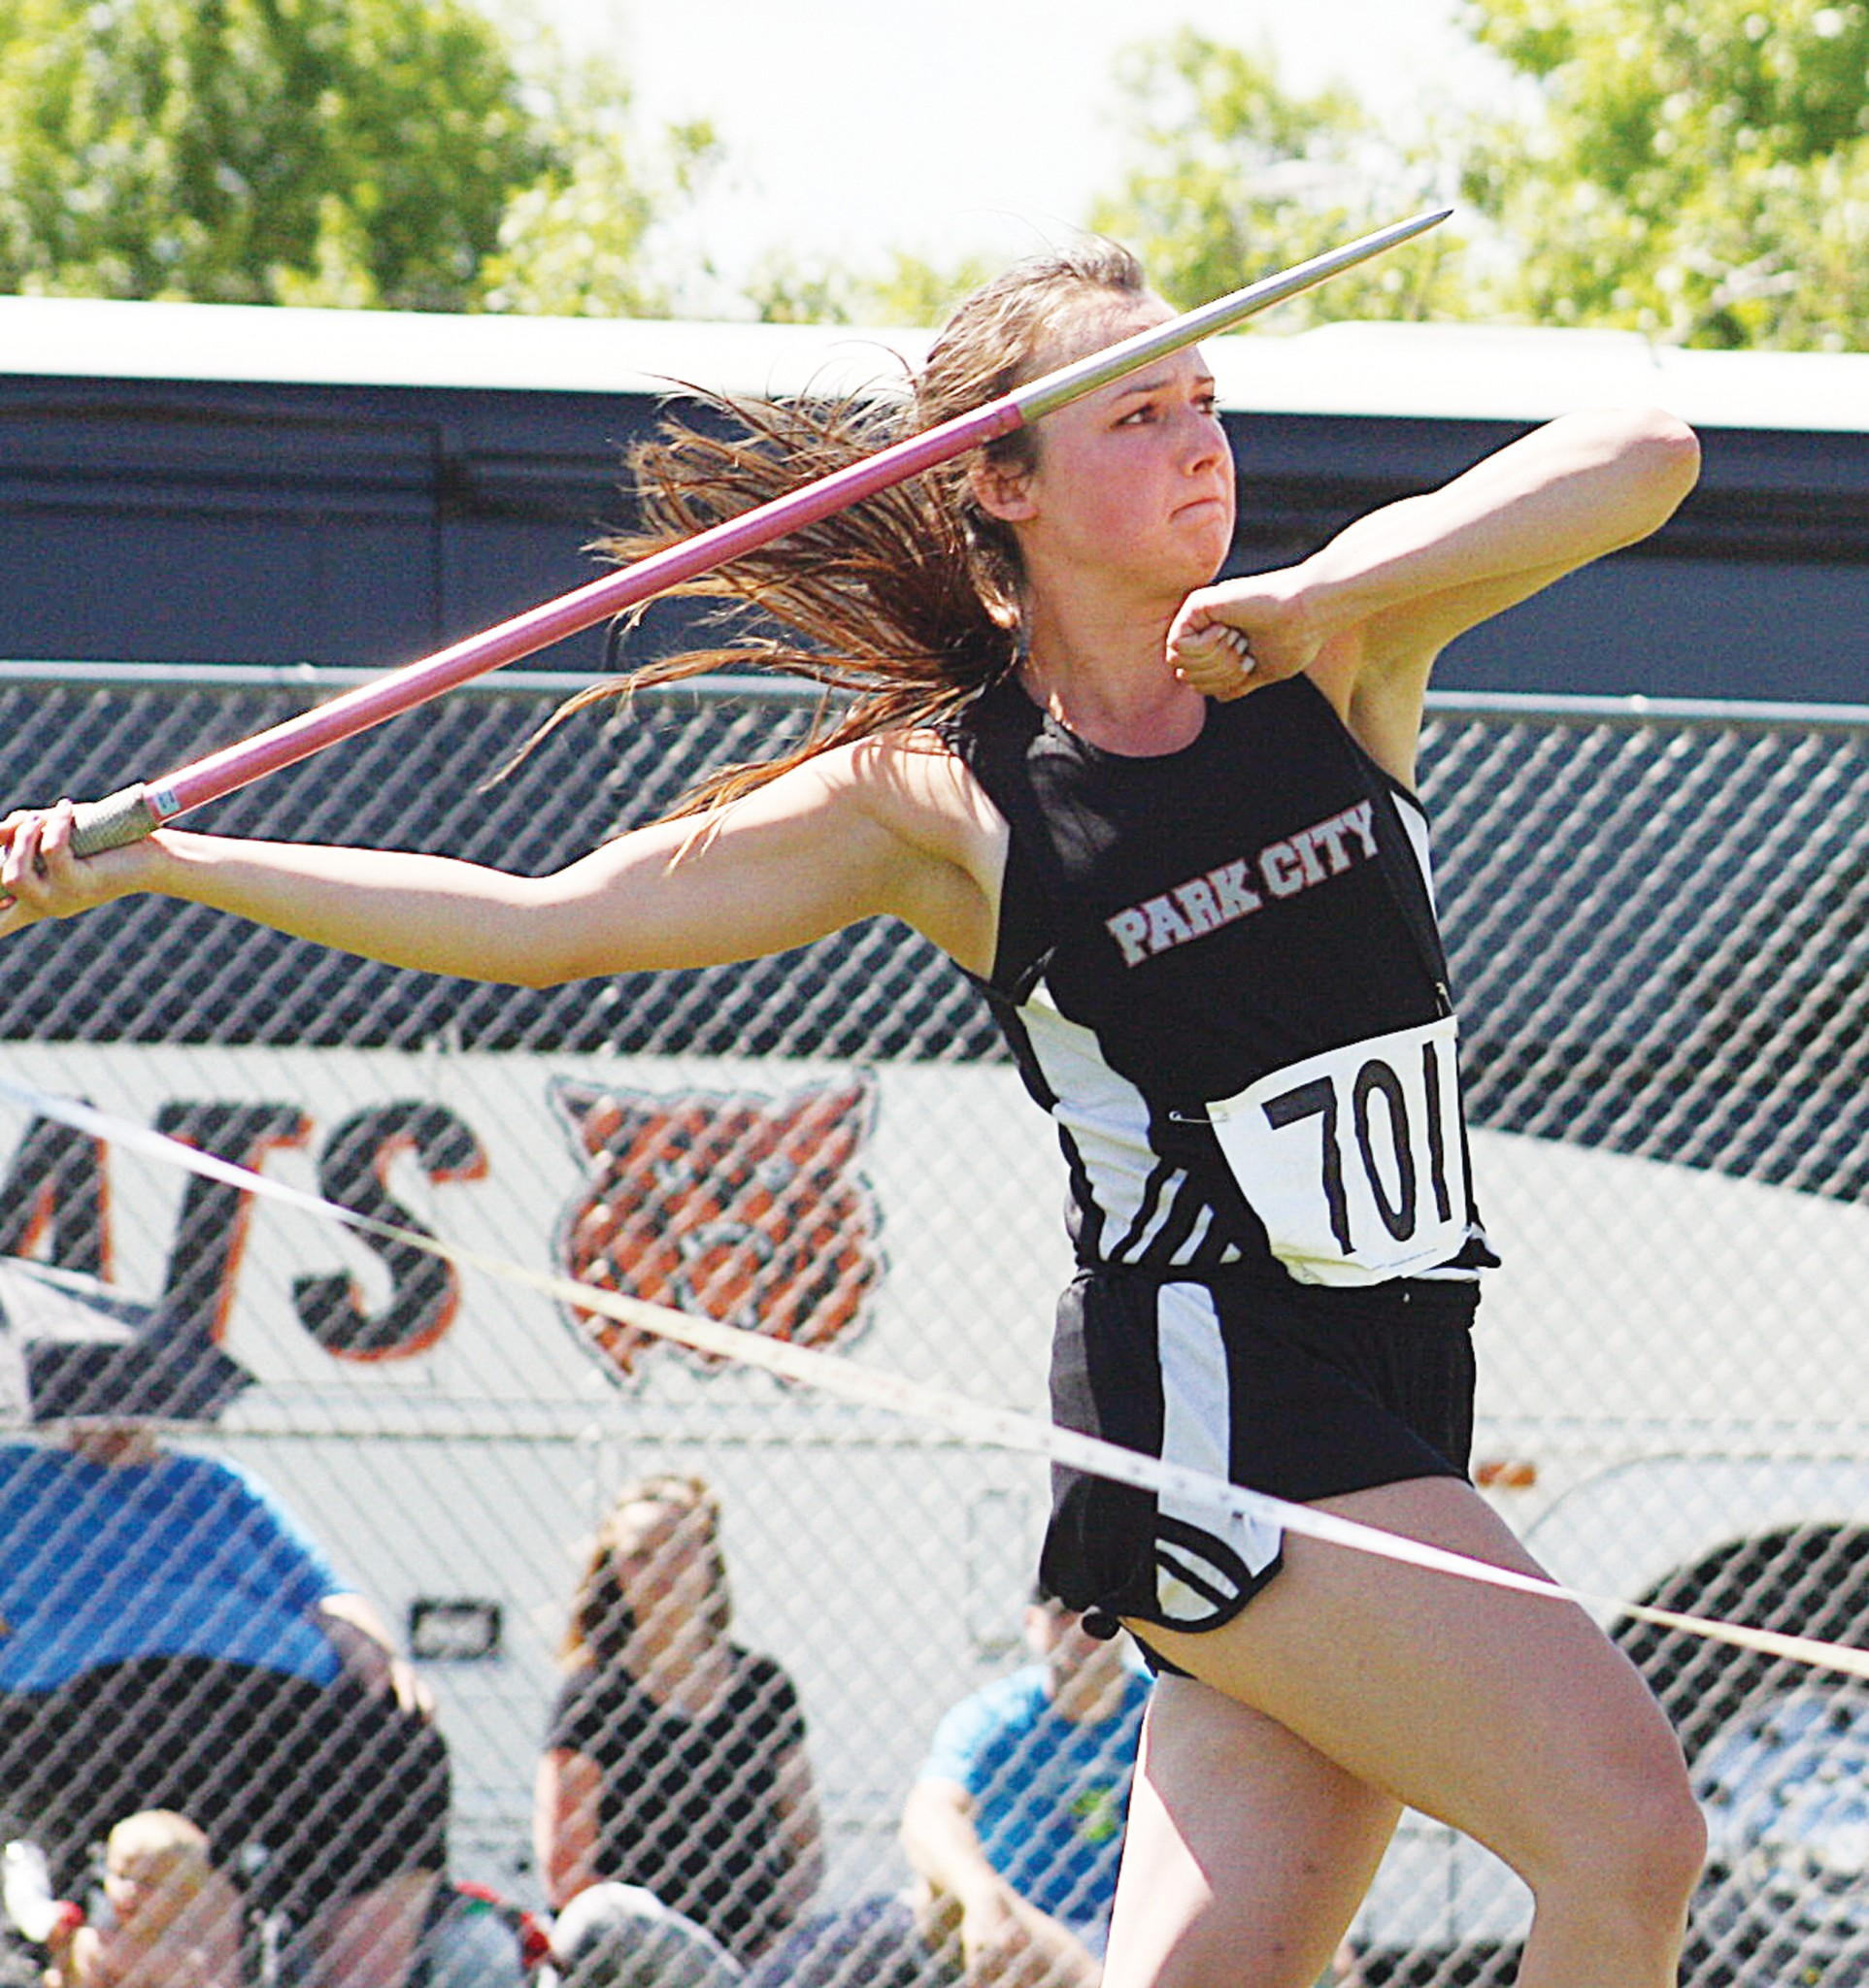 Park City's Brittany Frank -- Javelin